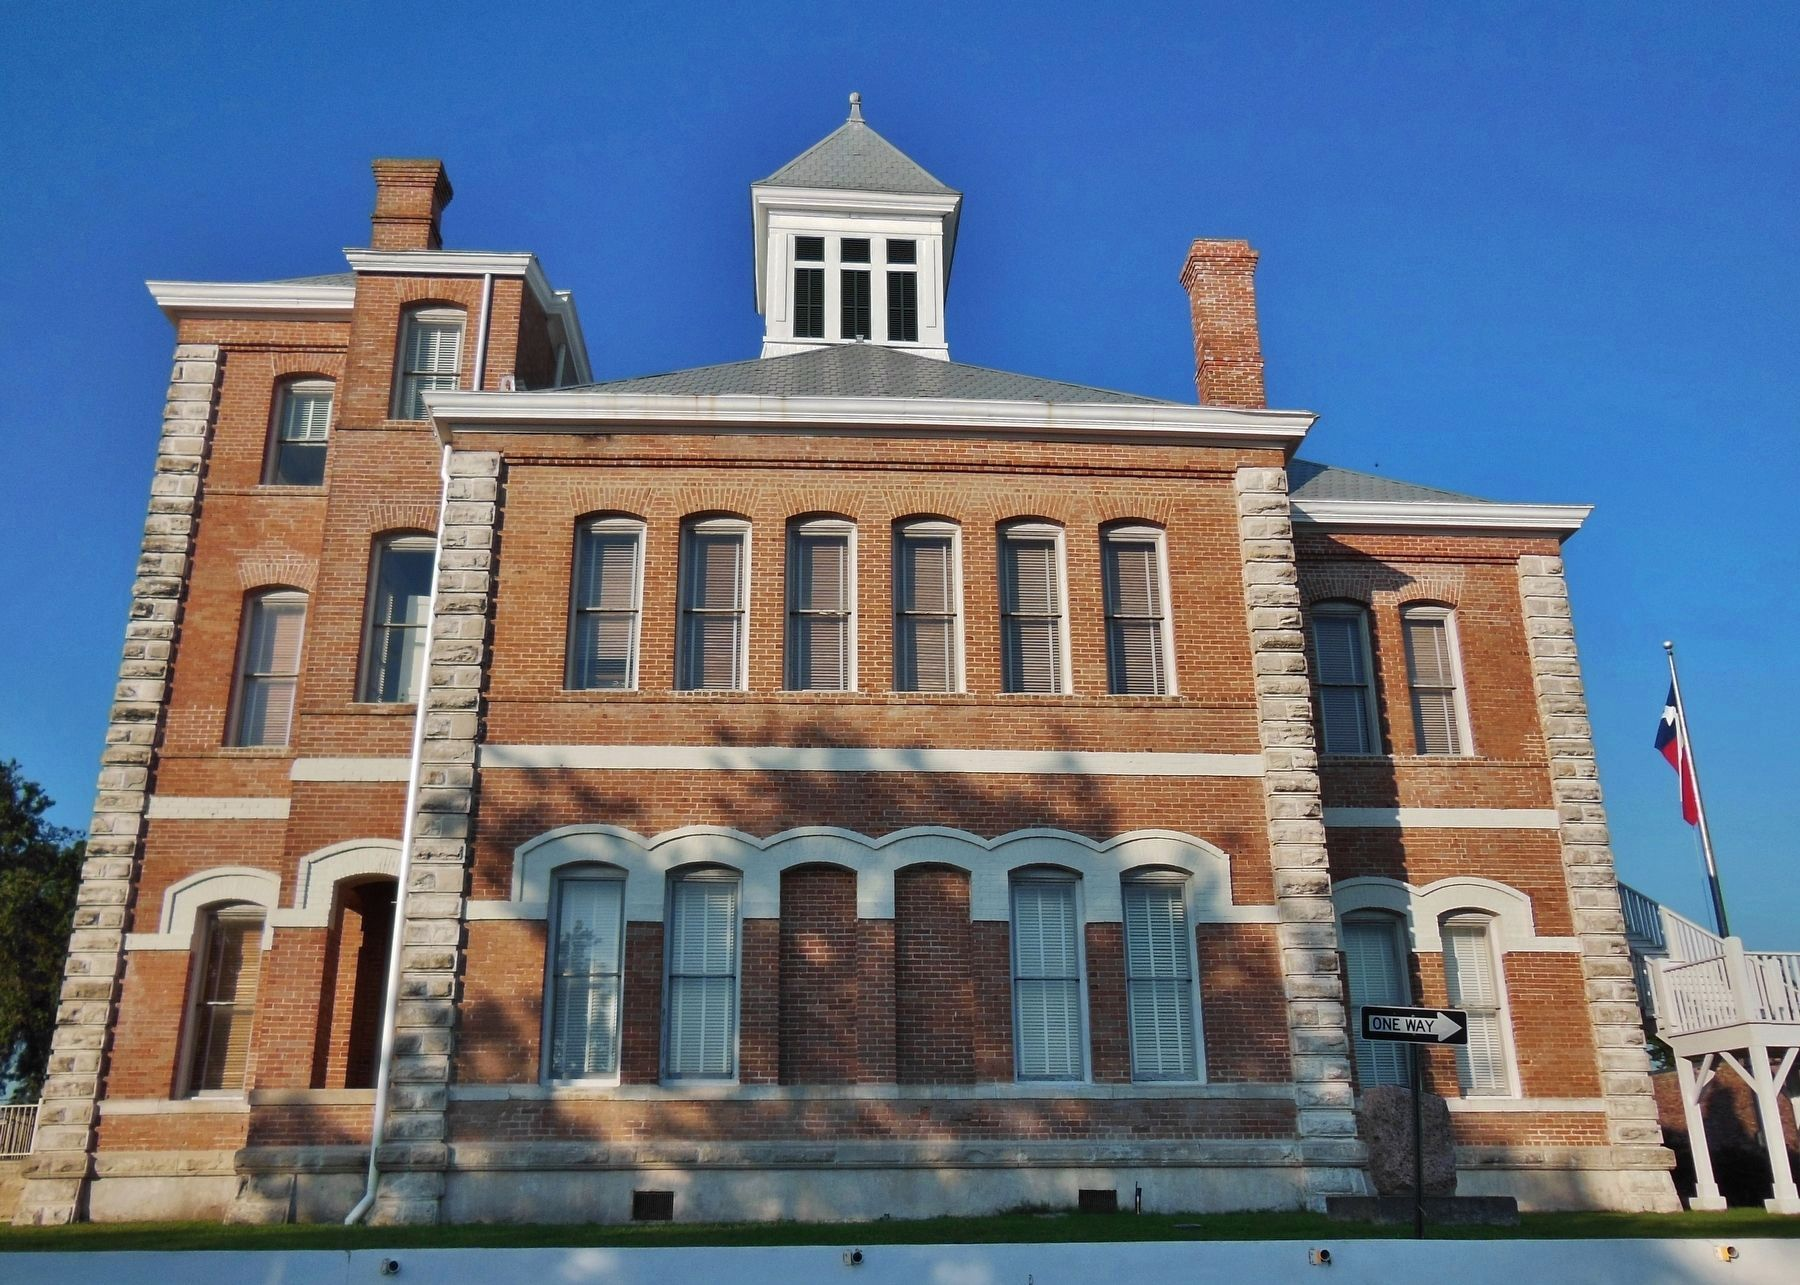 Grimes County Courthouse (<i>west side</i>) image. Click for full size.